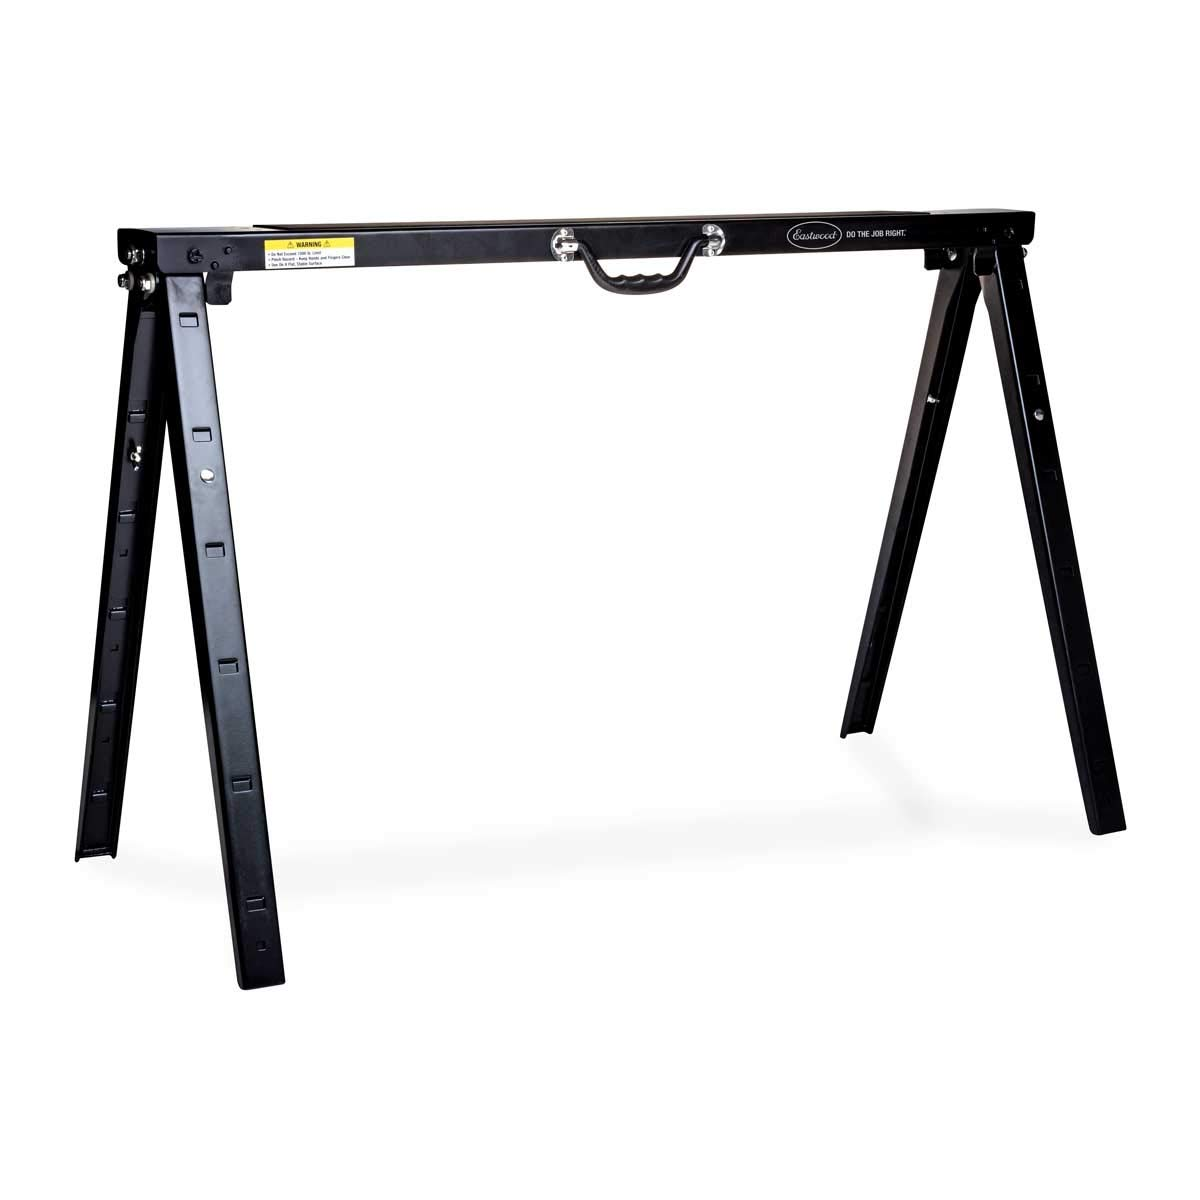 Eastwood Heavy Duty Height Adjustable Steel Or Metal Saw Horse And Jobsite Table With Legs Portable 1500 Lbs by Eastwood